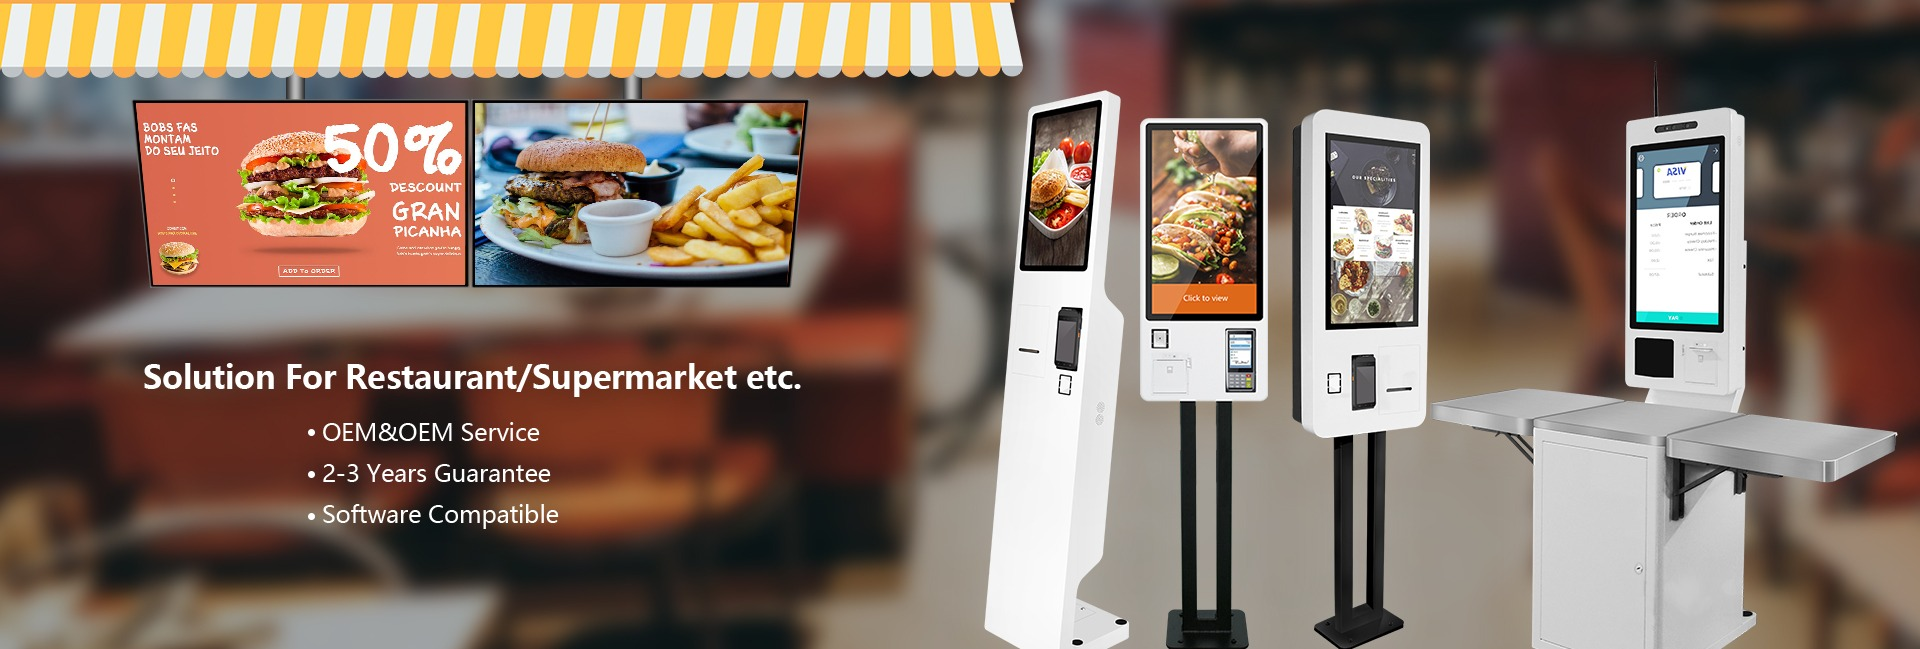 online takeaway ordering system uk Digital Screens and self order kiosk